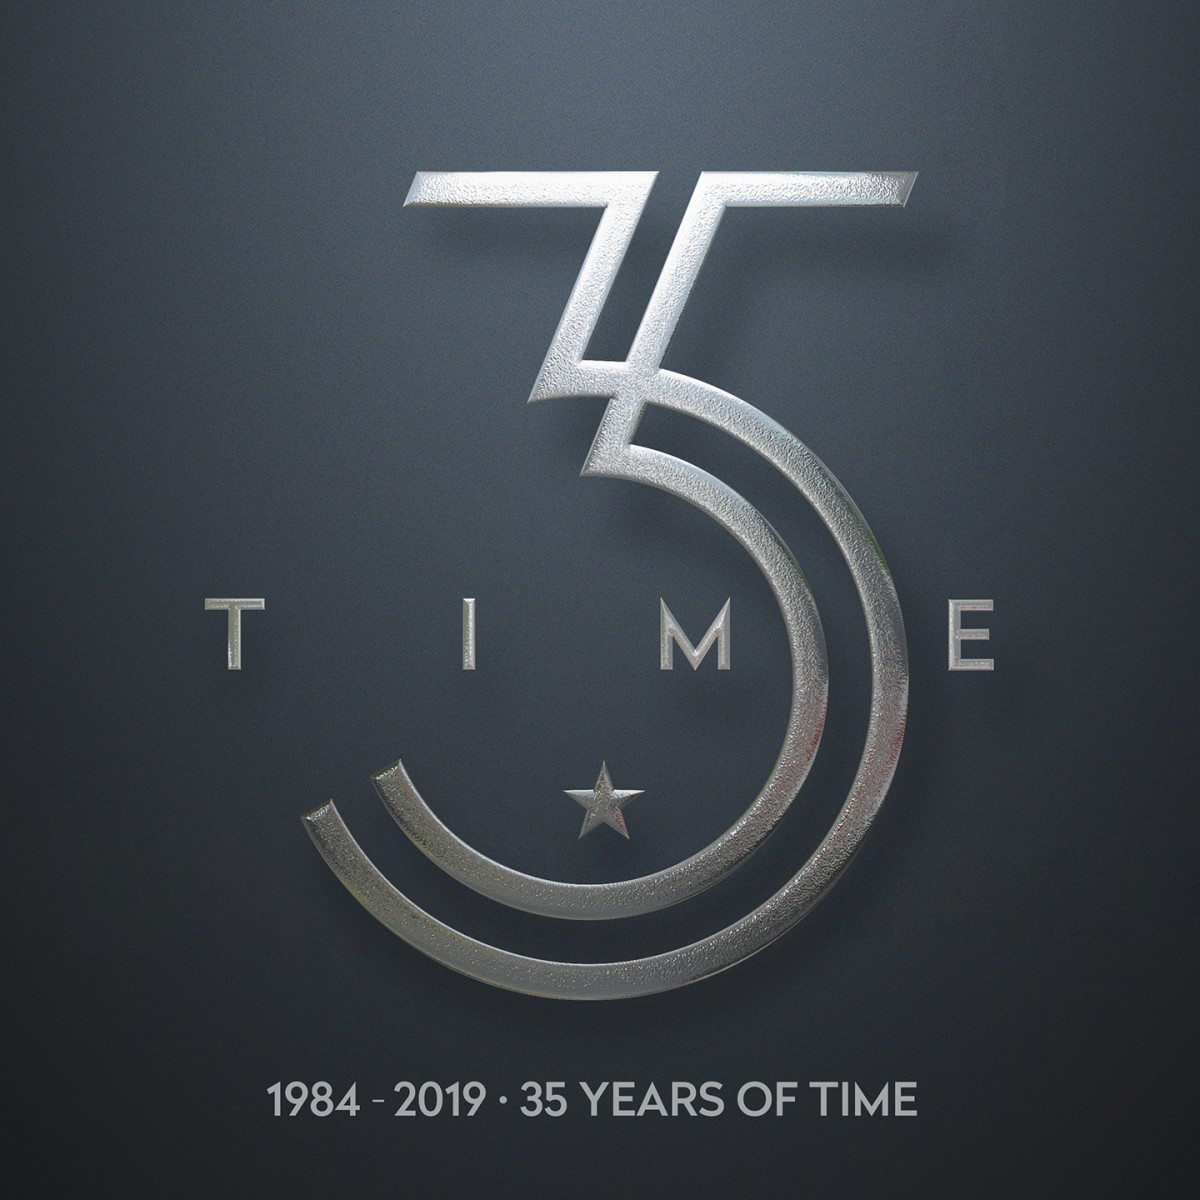 TIME 35 (1984 - 2019) 35 YEARS OF TIME